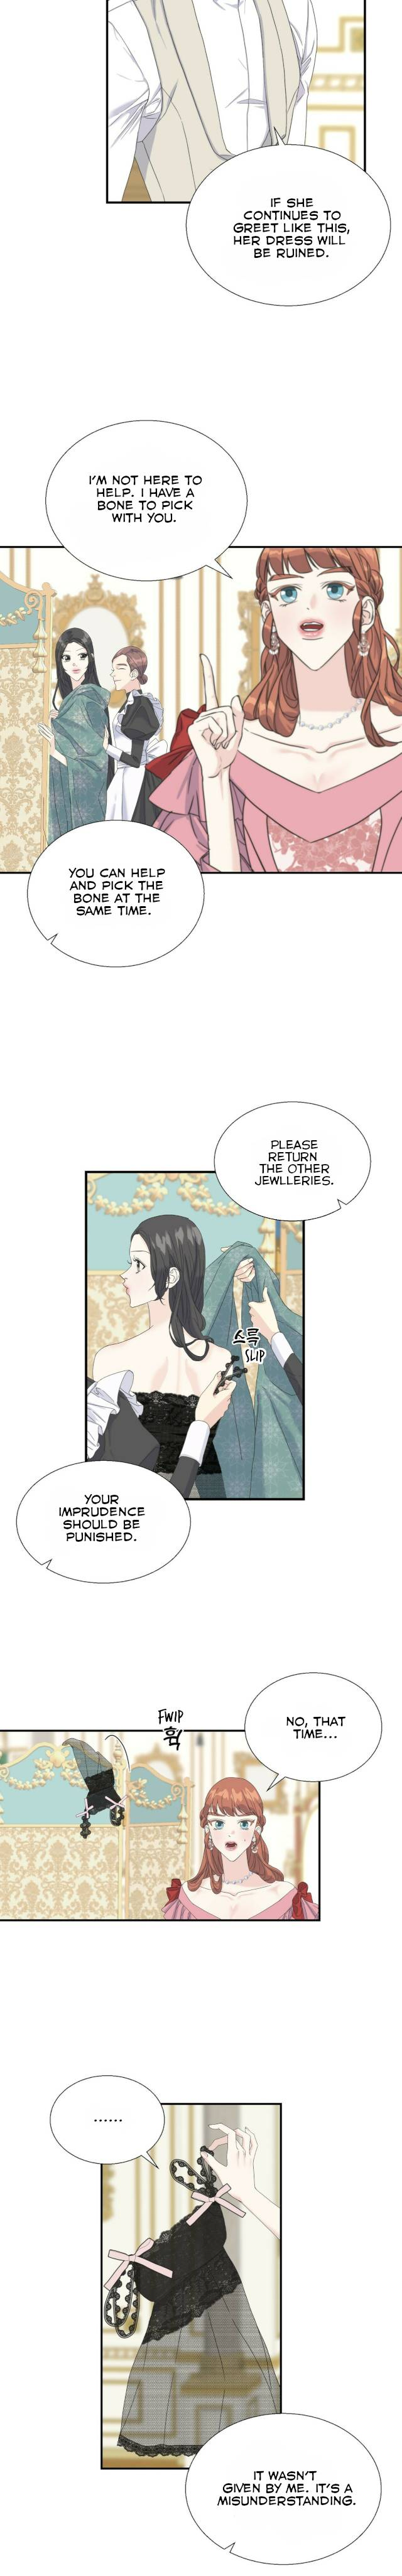 Crows like Shiny Things - chapter 11 - #3